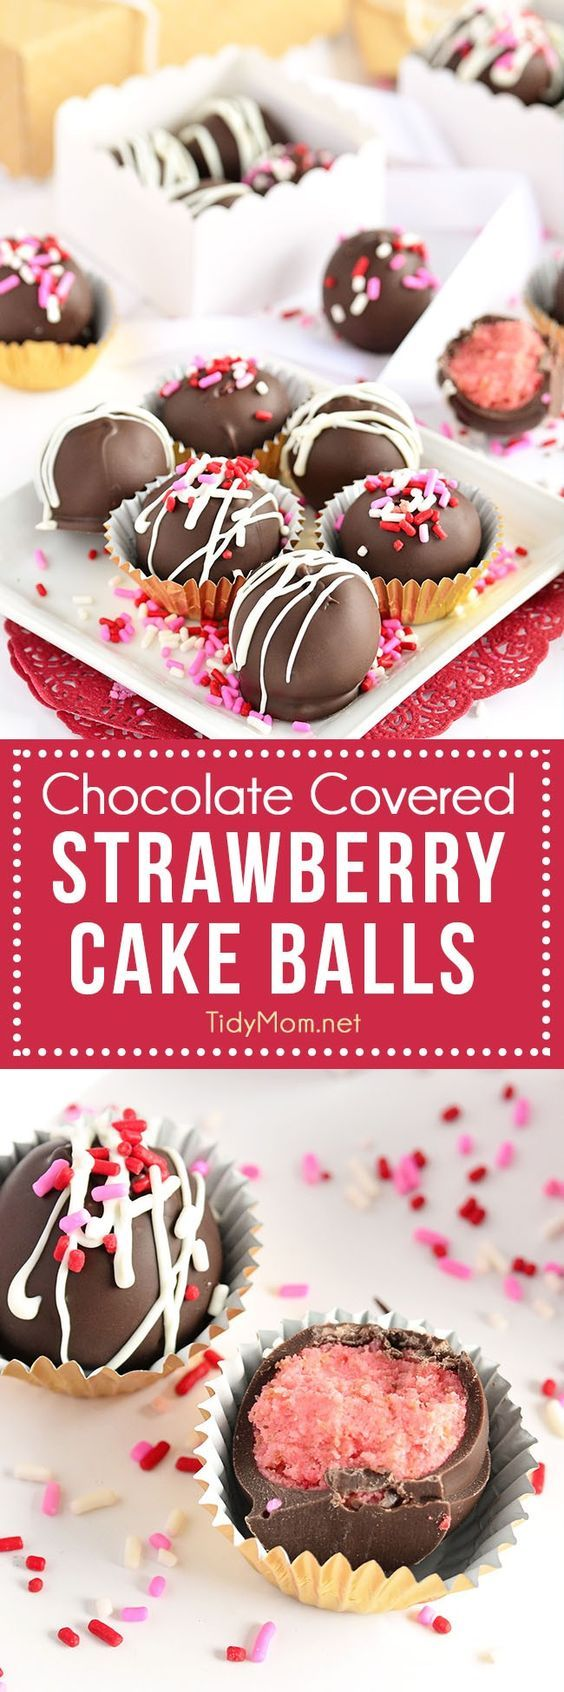 Cake Decorations Chocolate Balls : 1000+ ideas about Strawberry Cake Decorations on Pinterest ...